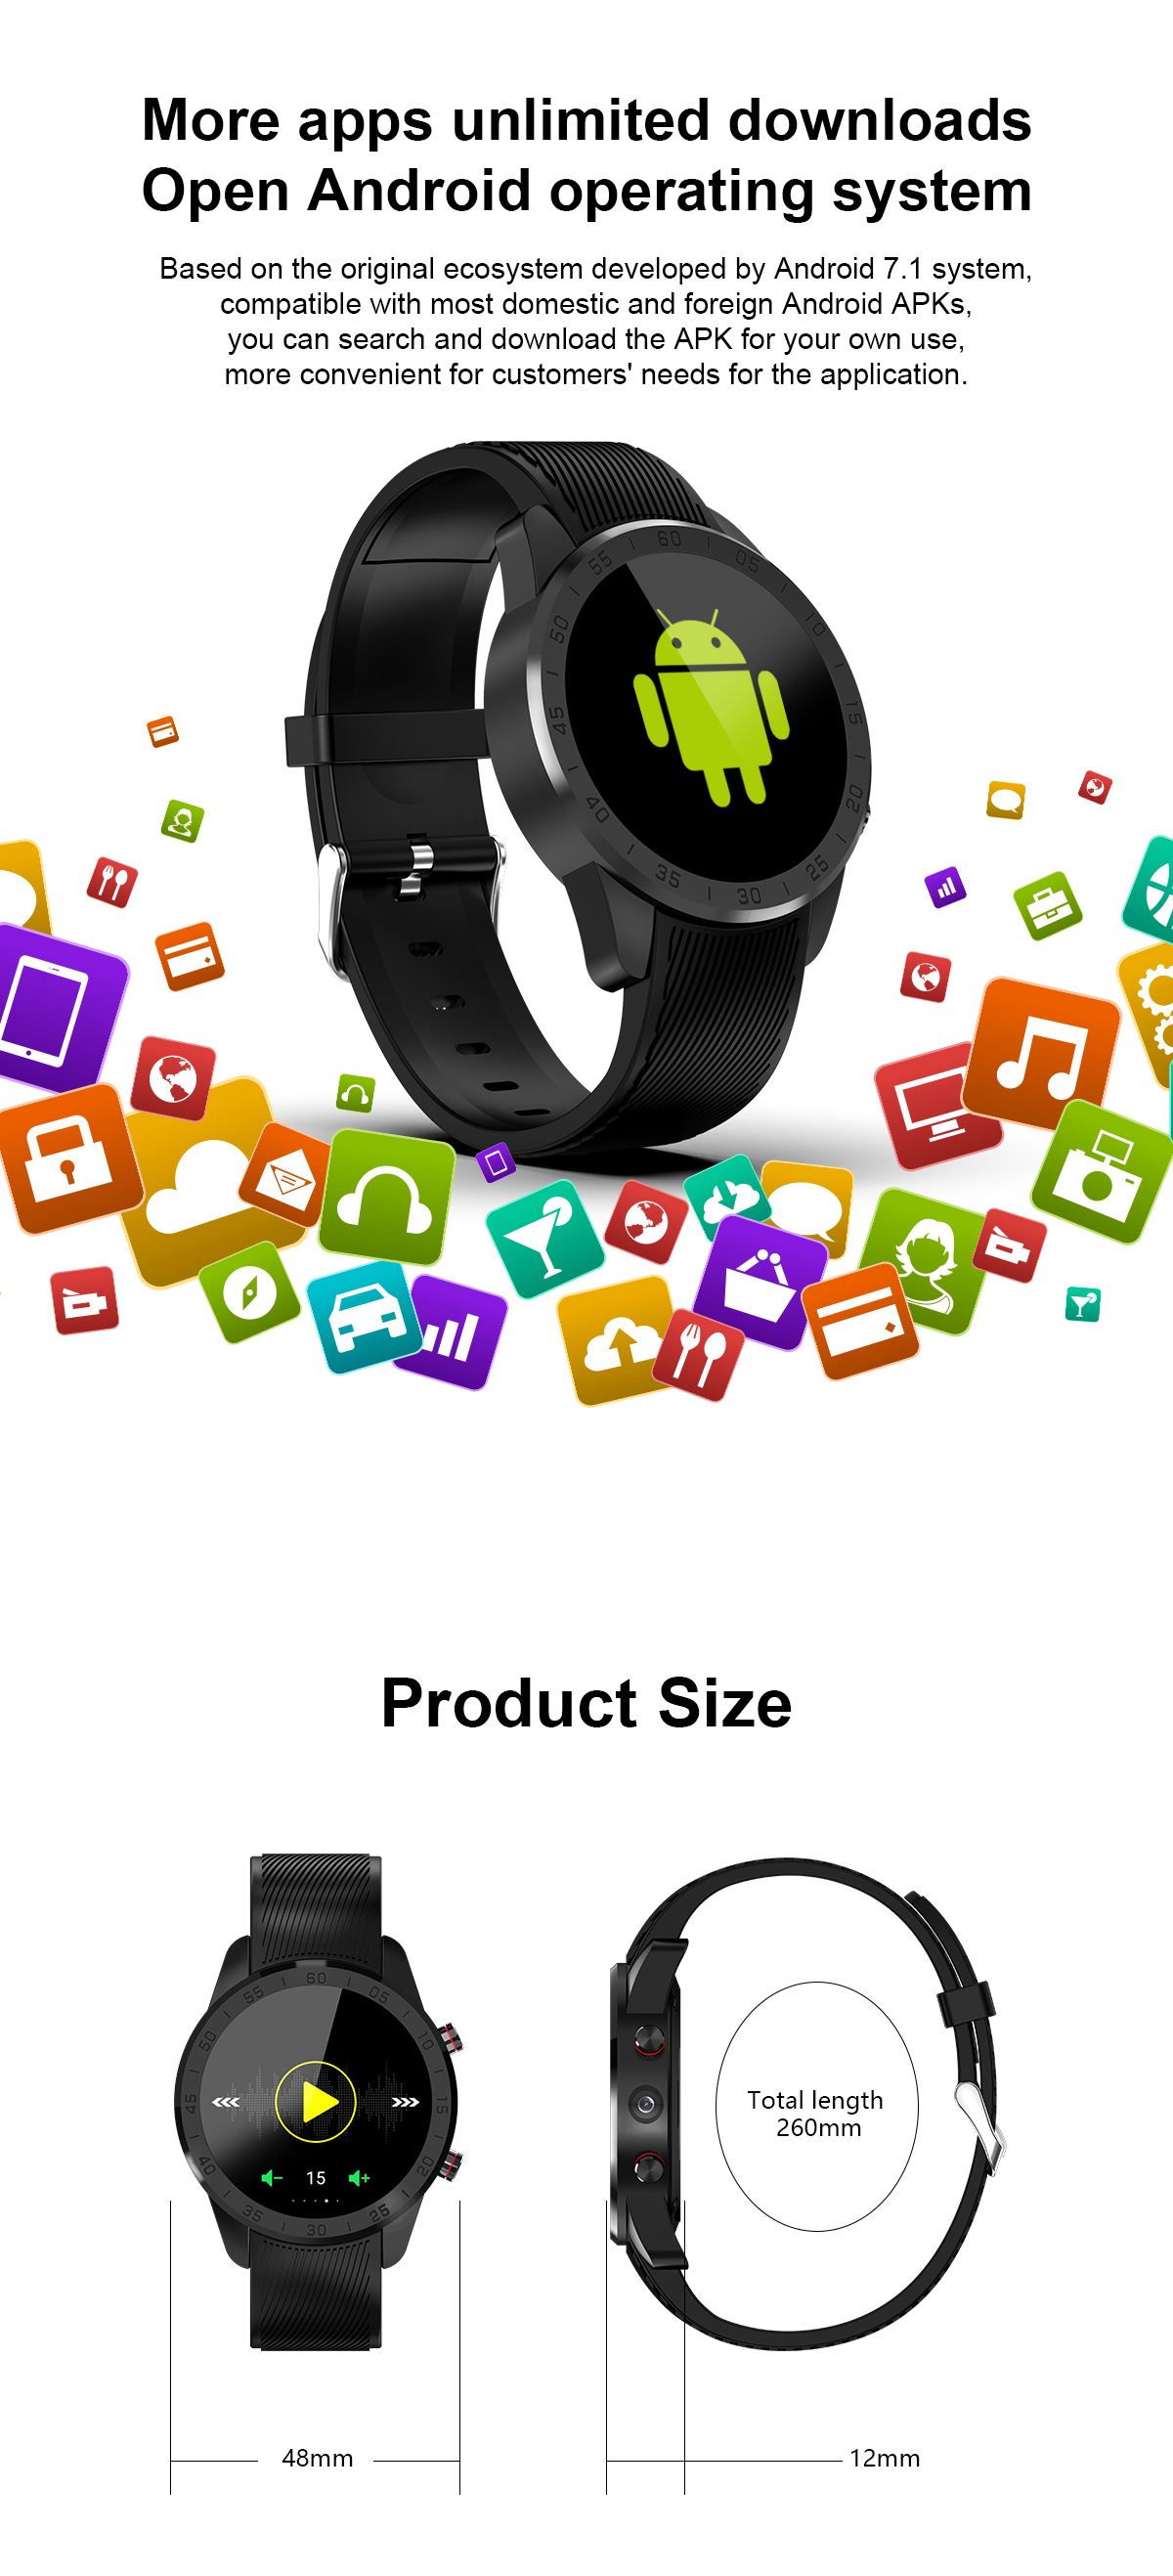 TenFifteen F6 4G 1+16G Watch Phone 1.39'' AMOLED Touch Screen GPS WIFI bluetooth 5 Million HD Camera Smart Watch Optical Heart Rate Monitor Fitness Exercise Sports Bracelet